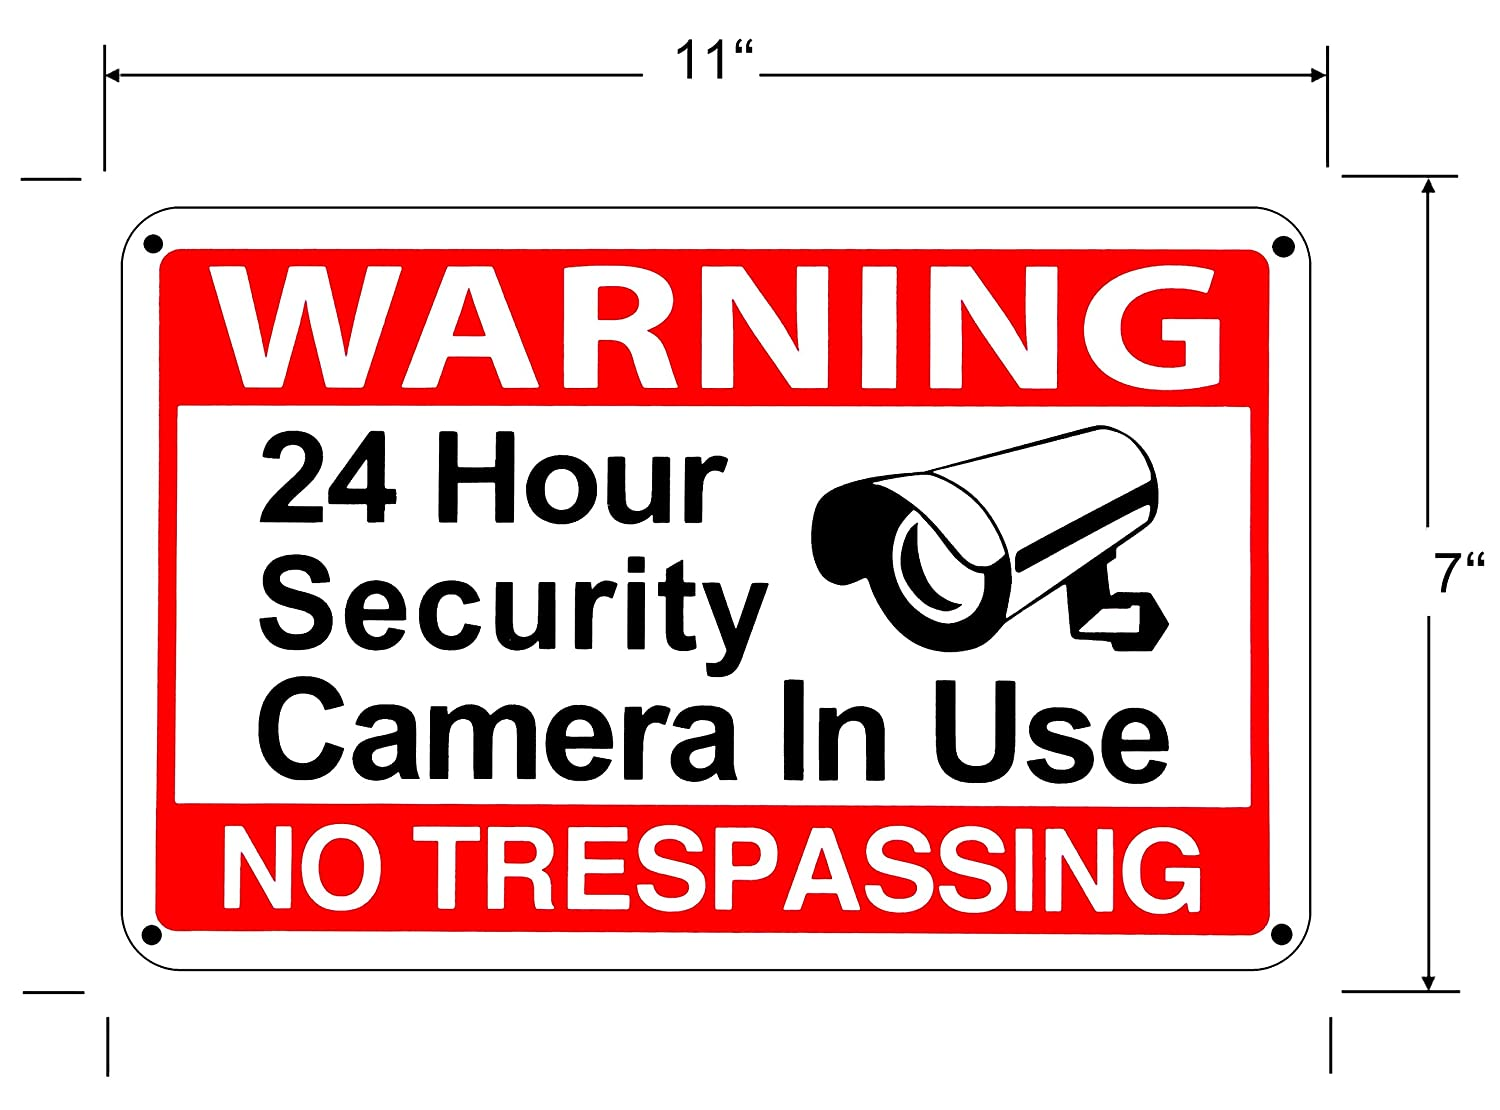 graphic regarding Video Surveillance Signs Printable referred to as 24 Hour Movie Surveillance Caution CCTV Indication No Tresping Stability indications